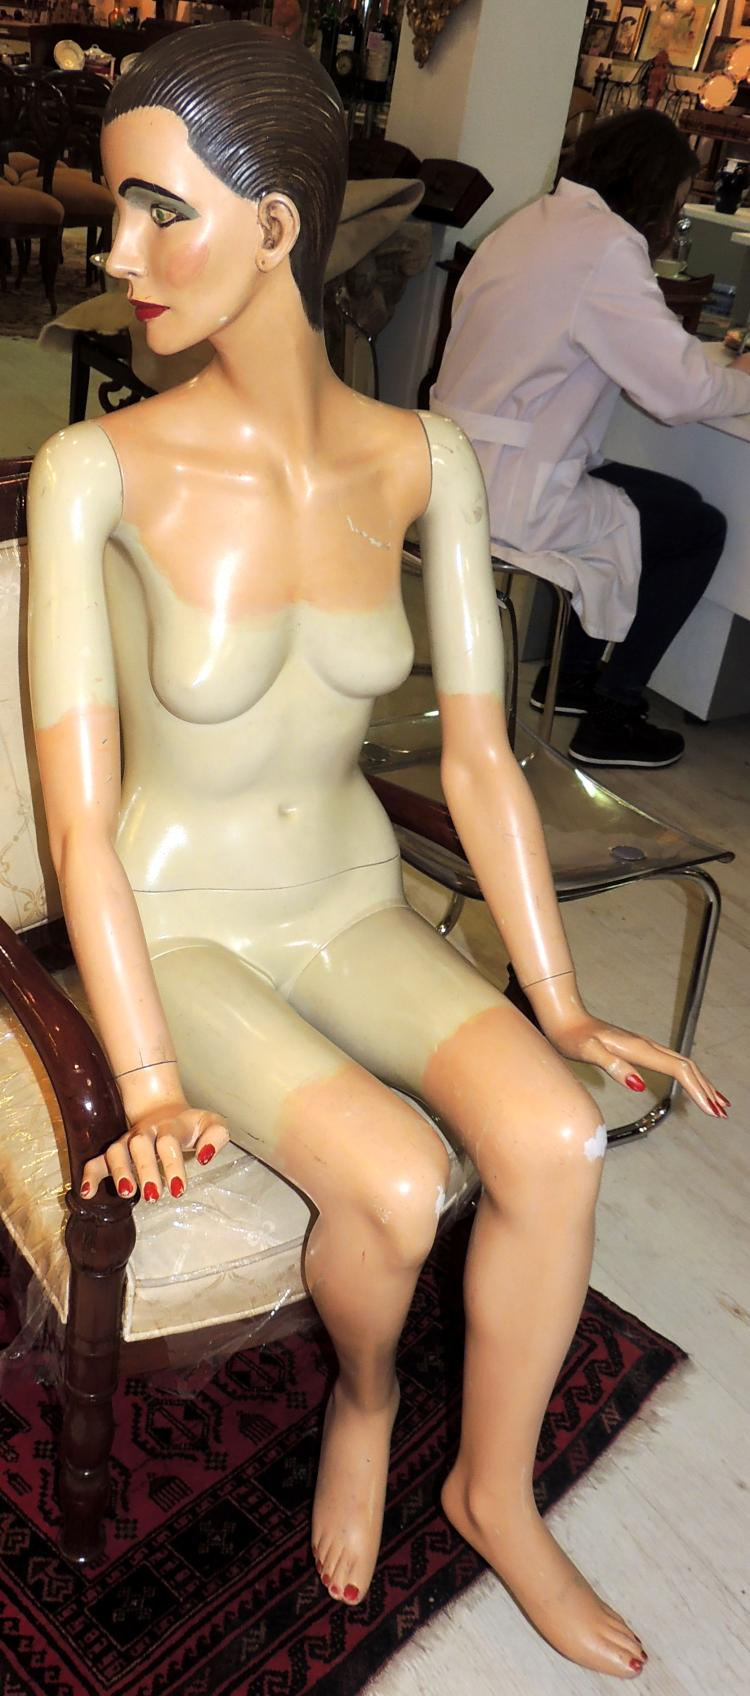 MANNEQUIN YEARS 60 life size and polychrome.